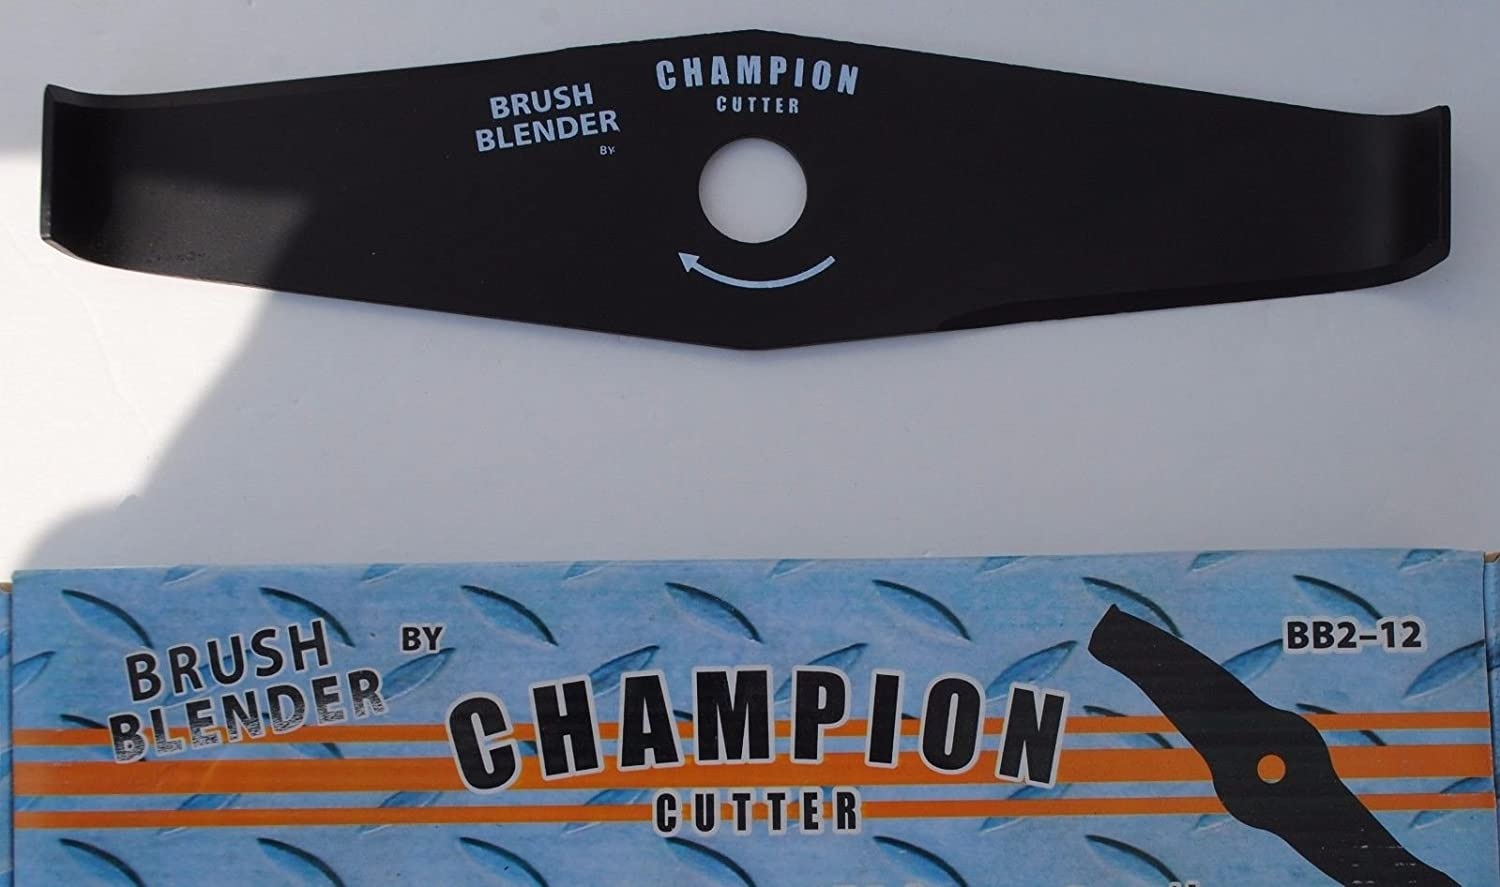 Brush Blender Brush Cutter Blade for Many Brands/Models of String Trimmers